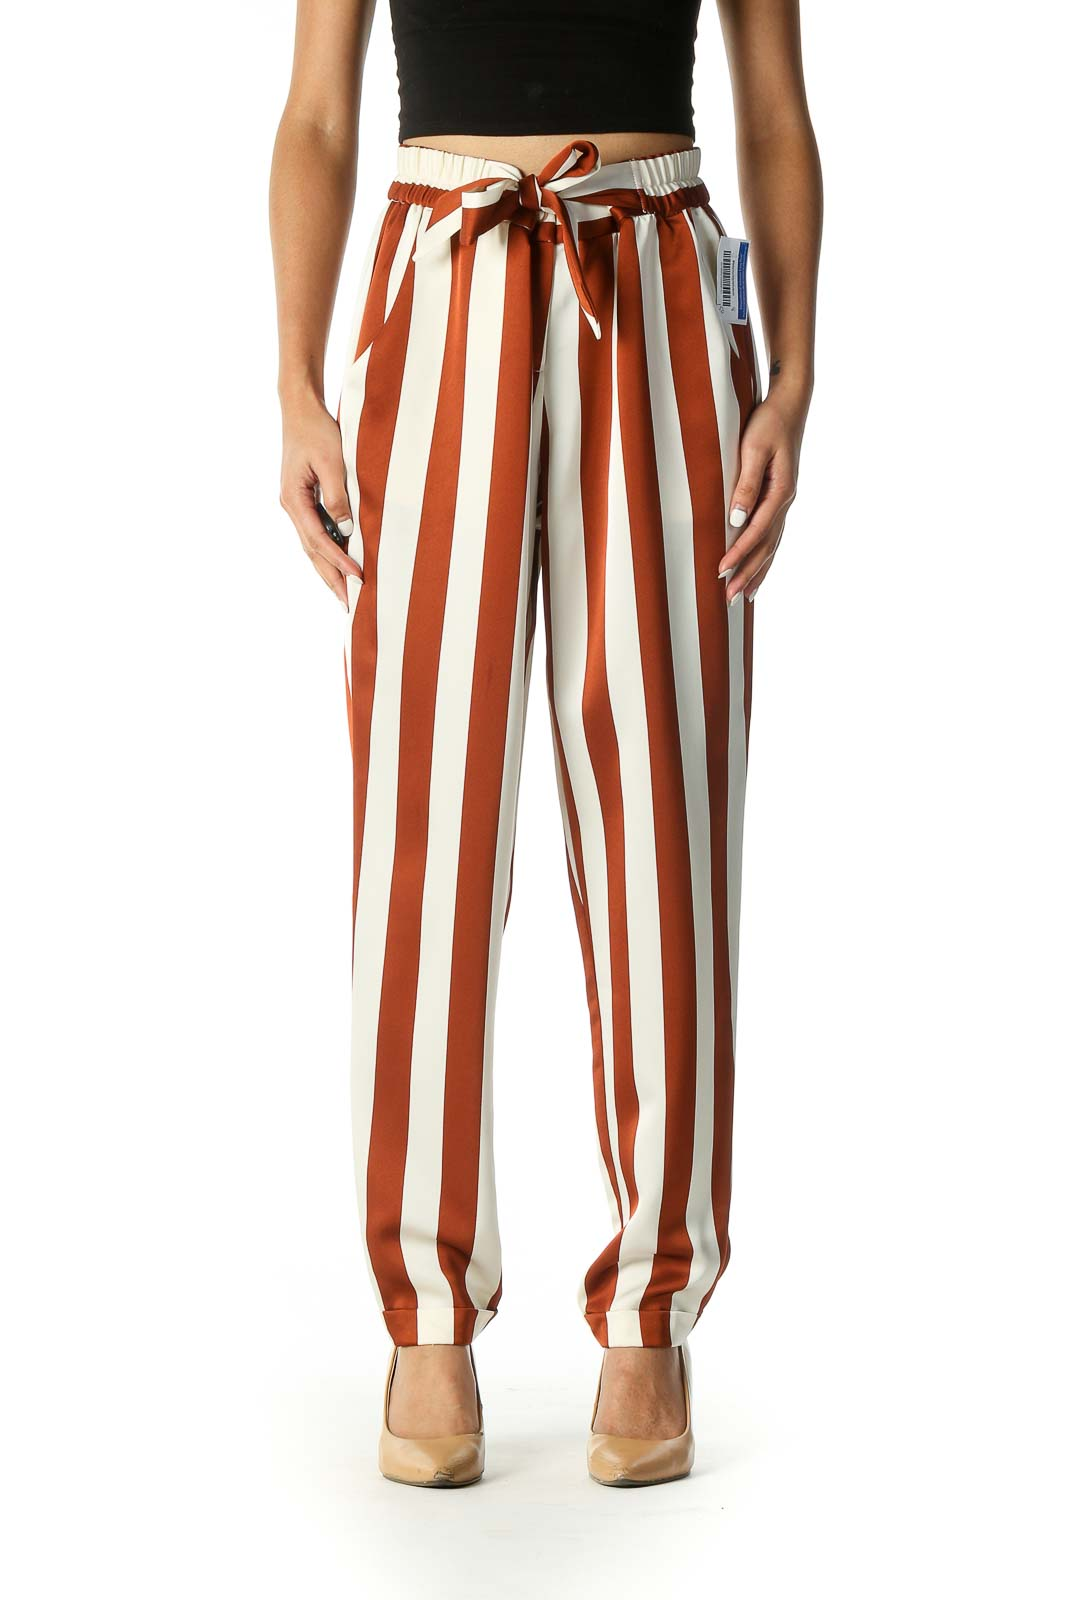 Orange Striped Casual Palazzo Pants Front